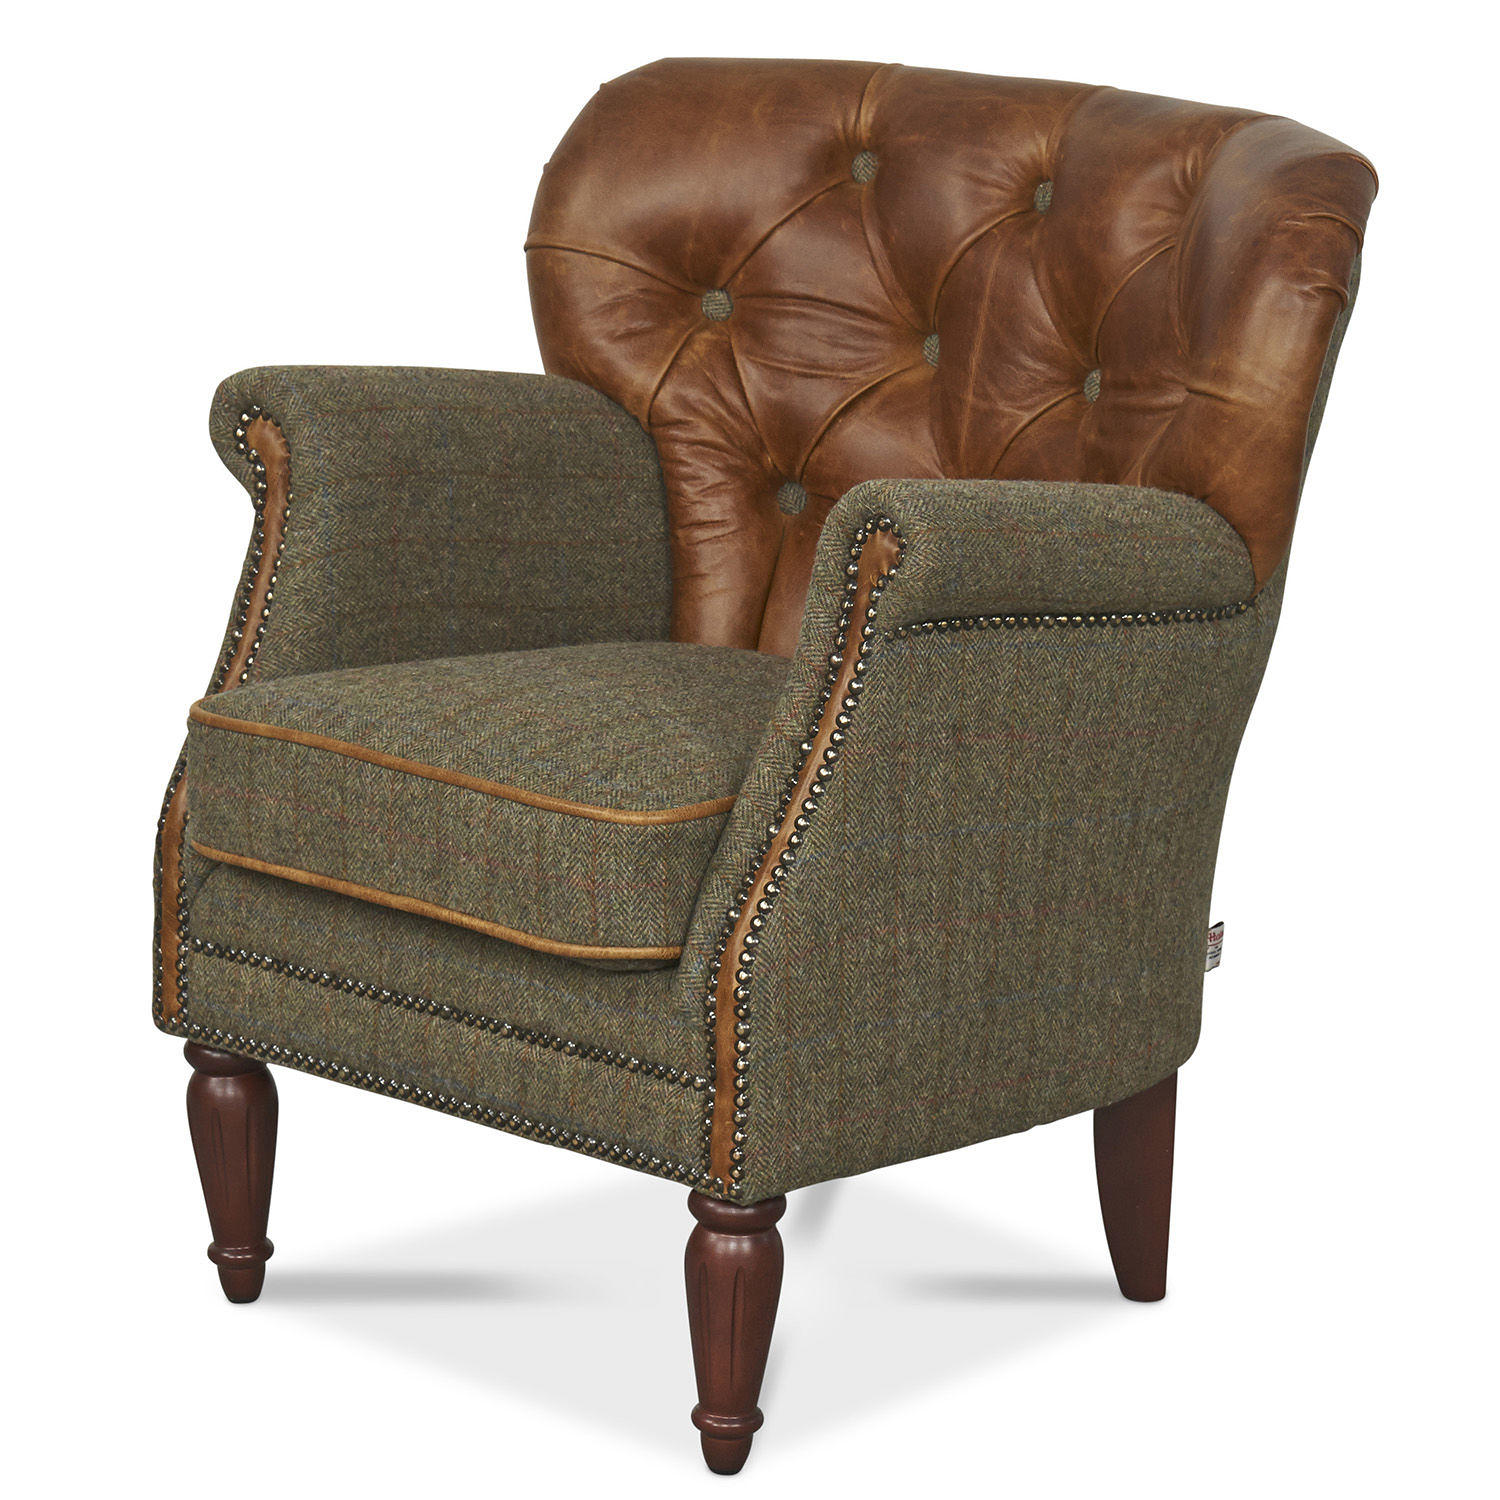 Marlon Armchair in Harris Tweed and Leather